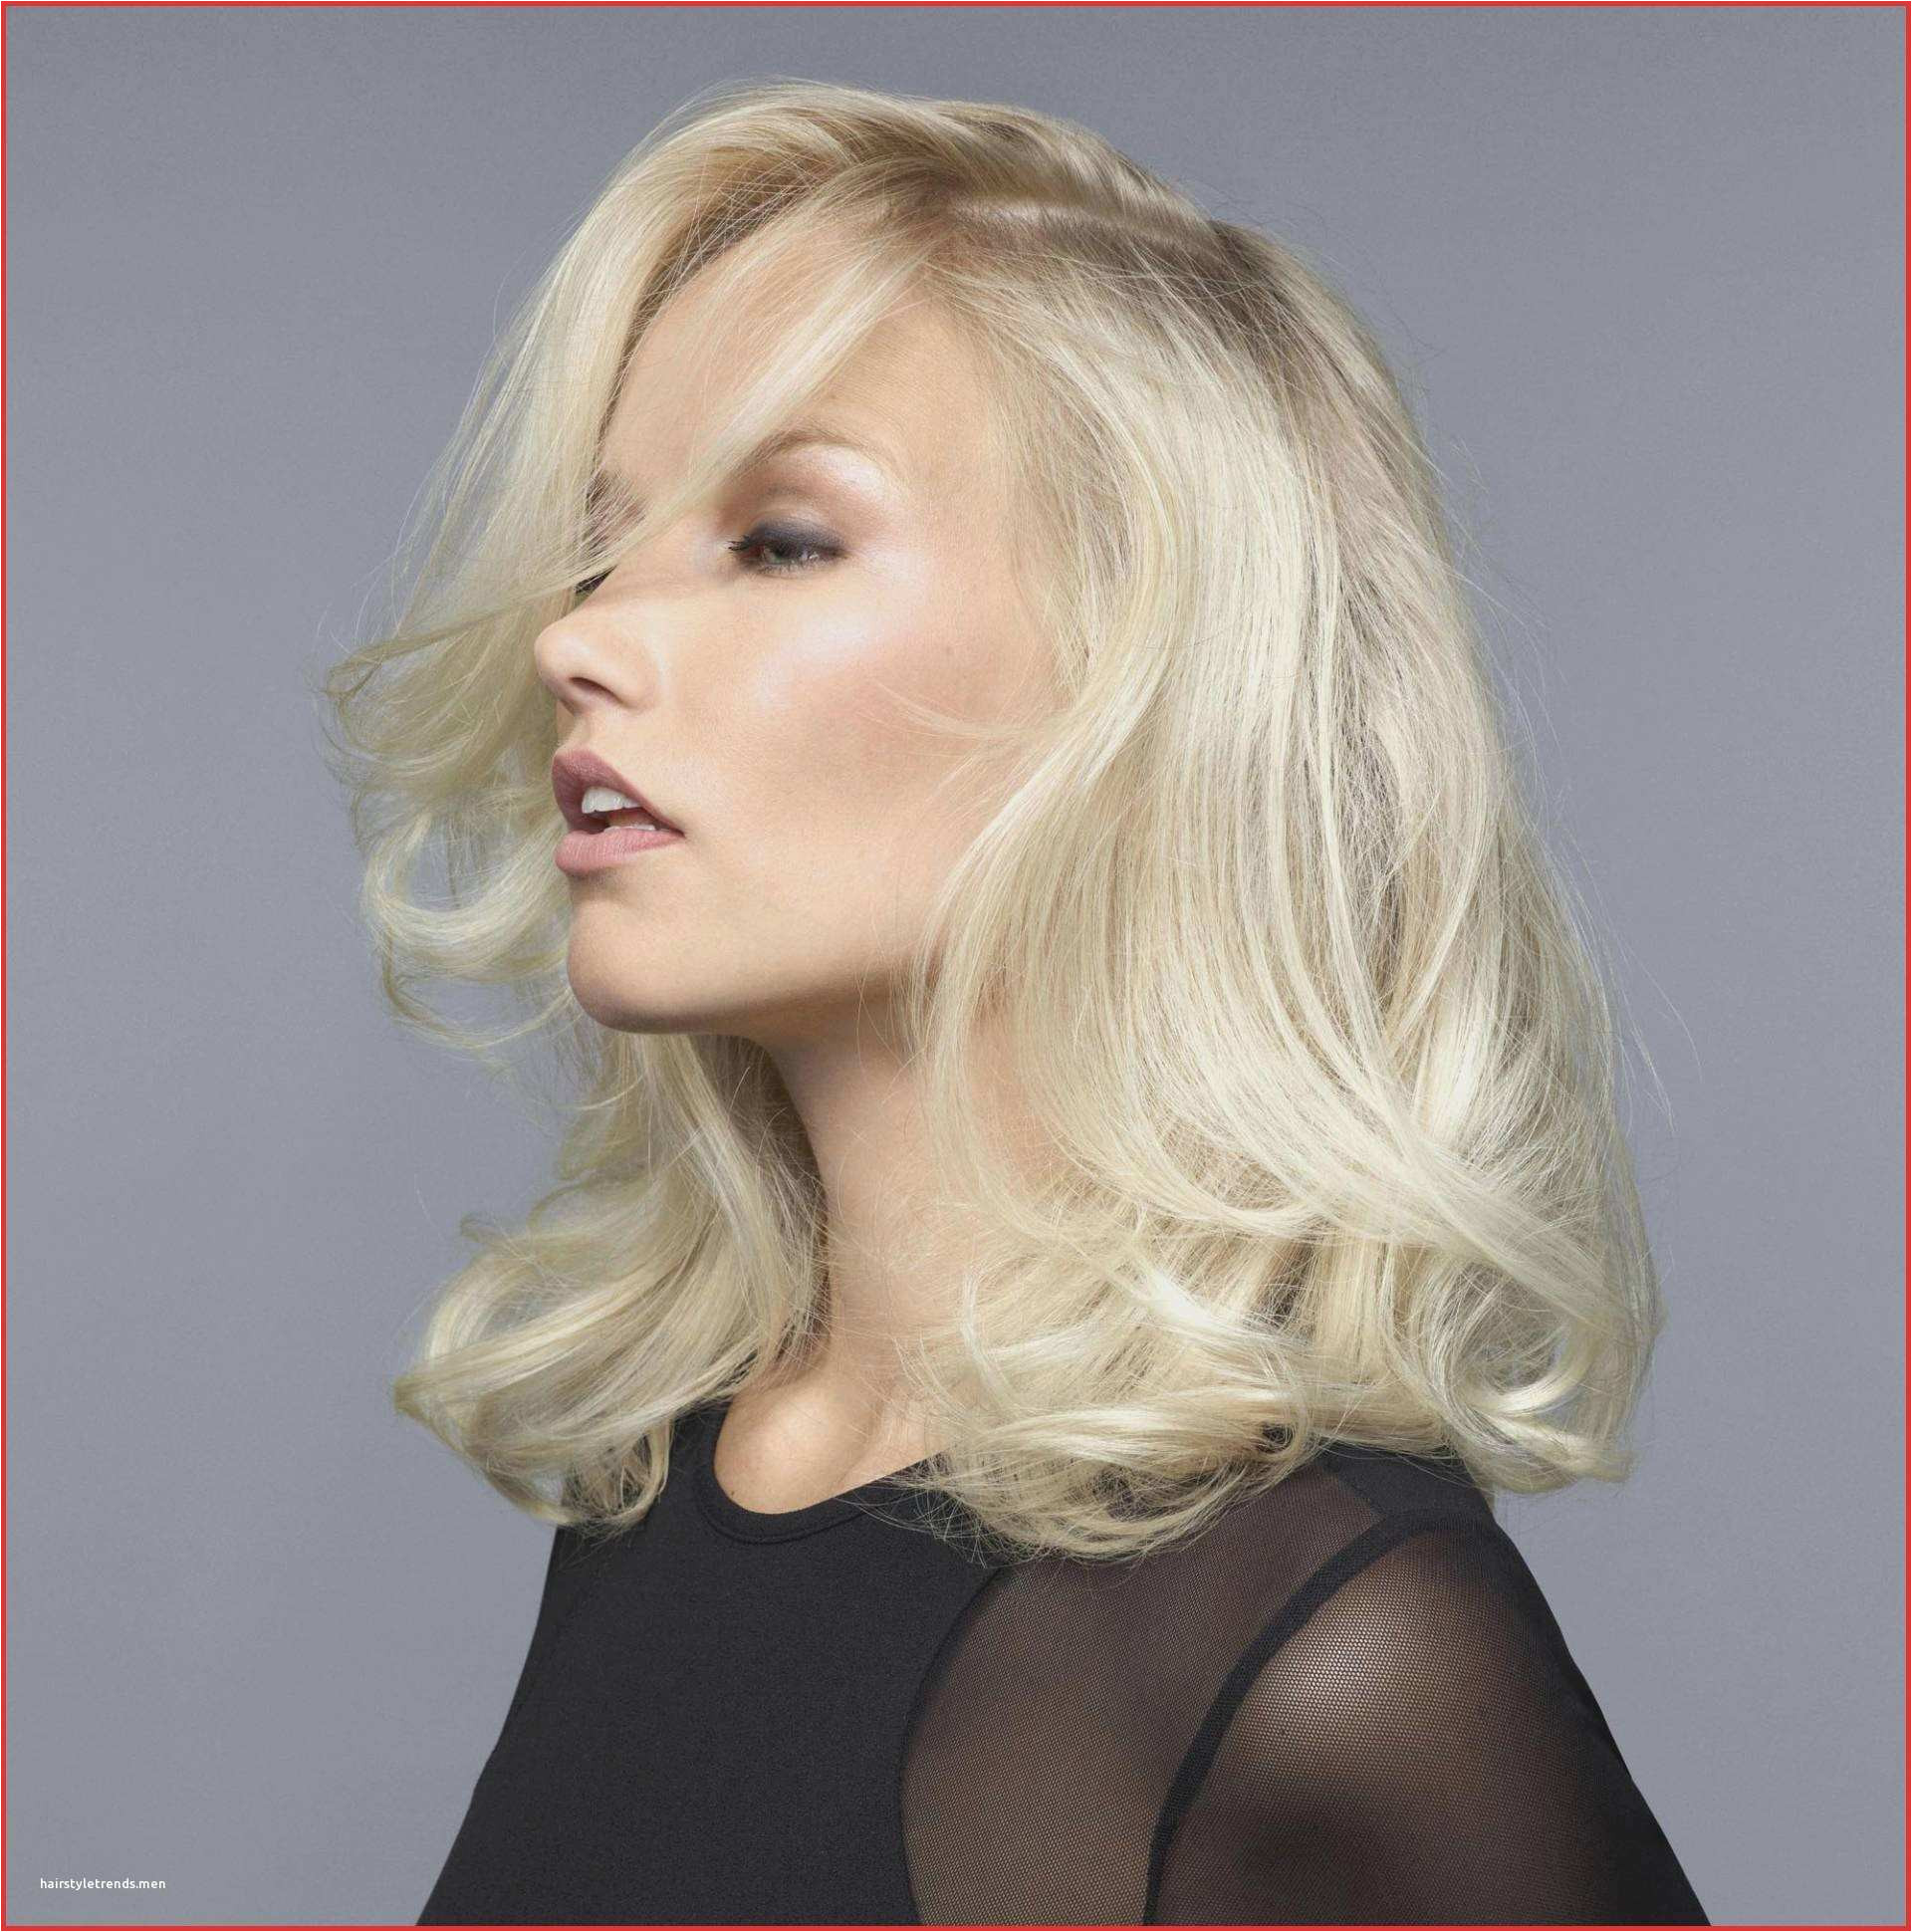 Coolest Hairstyles for Girls Fresh 45 Stylish Essential Cool Hairstyles for Guys with Long Hair